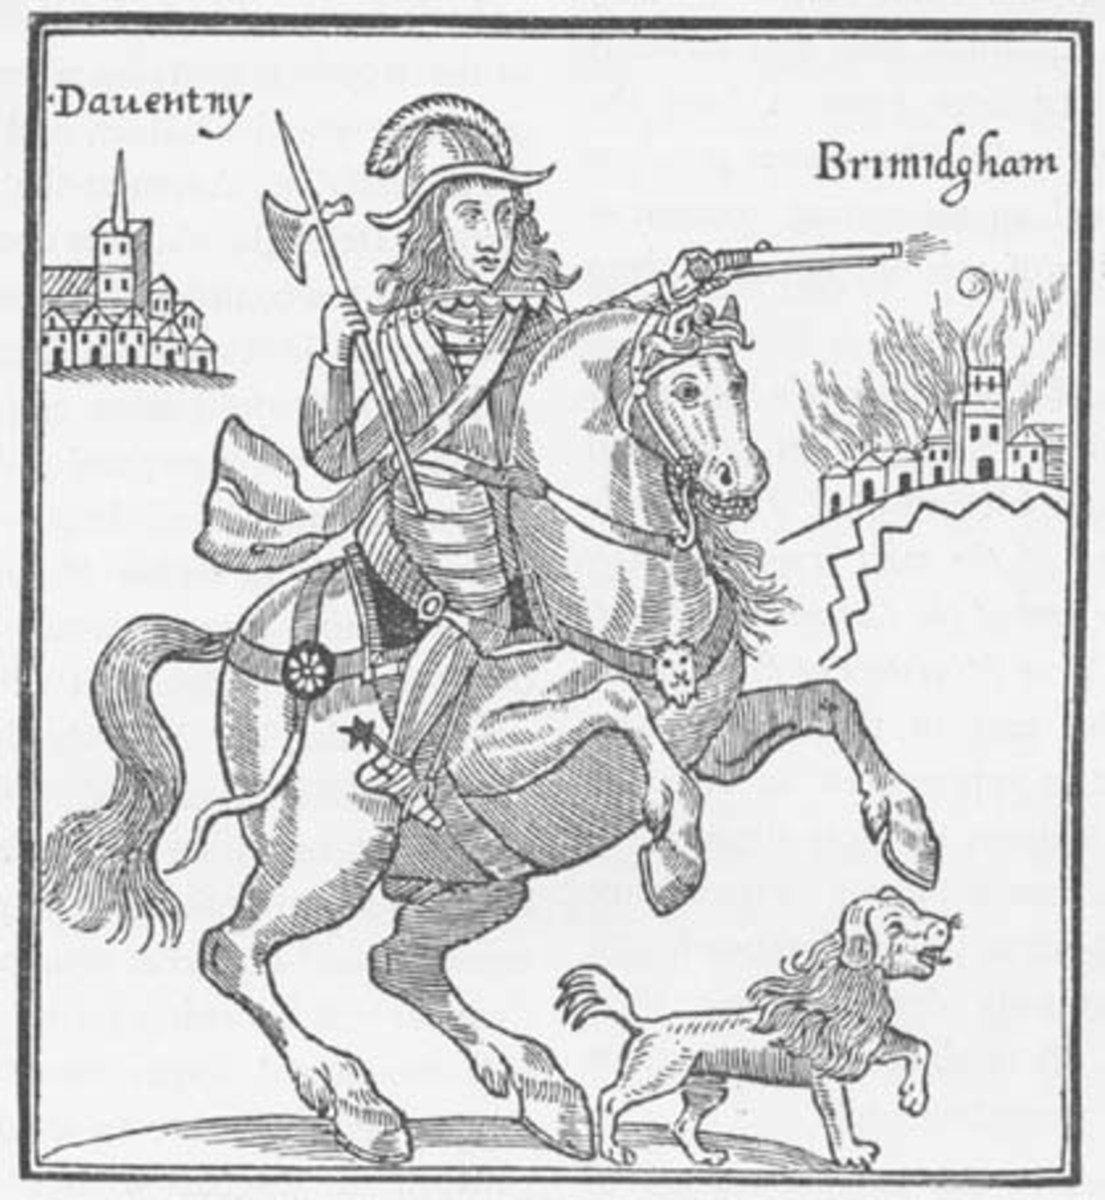 A Parliamentarian pamphlet showing Prince Rupert attacking Birmingham from Coventry.